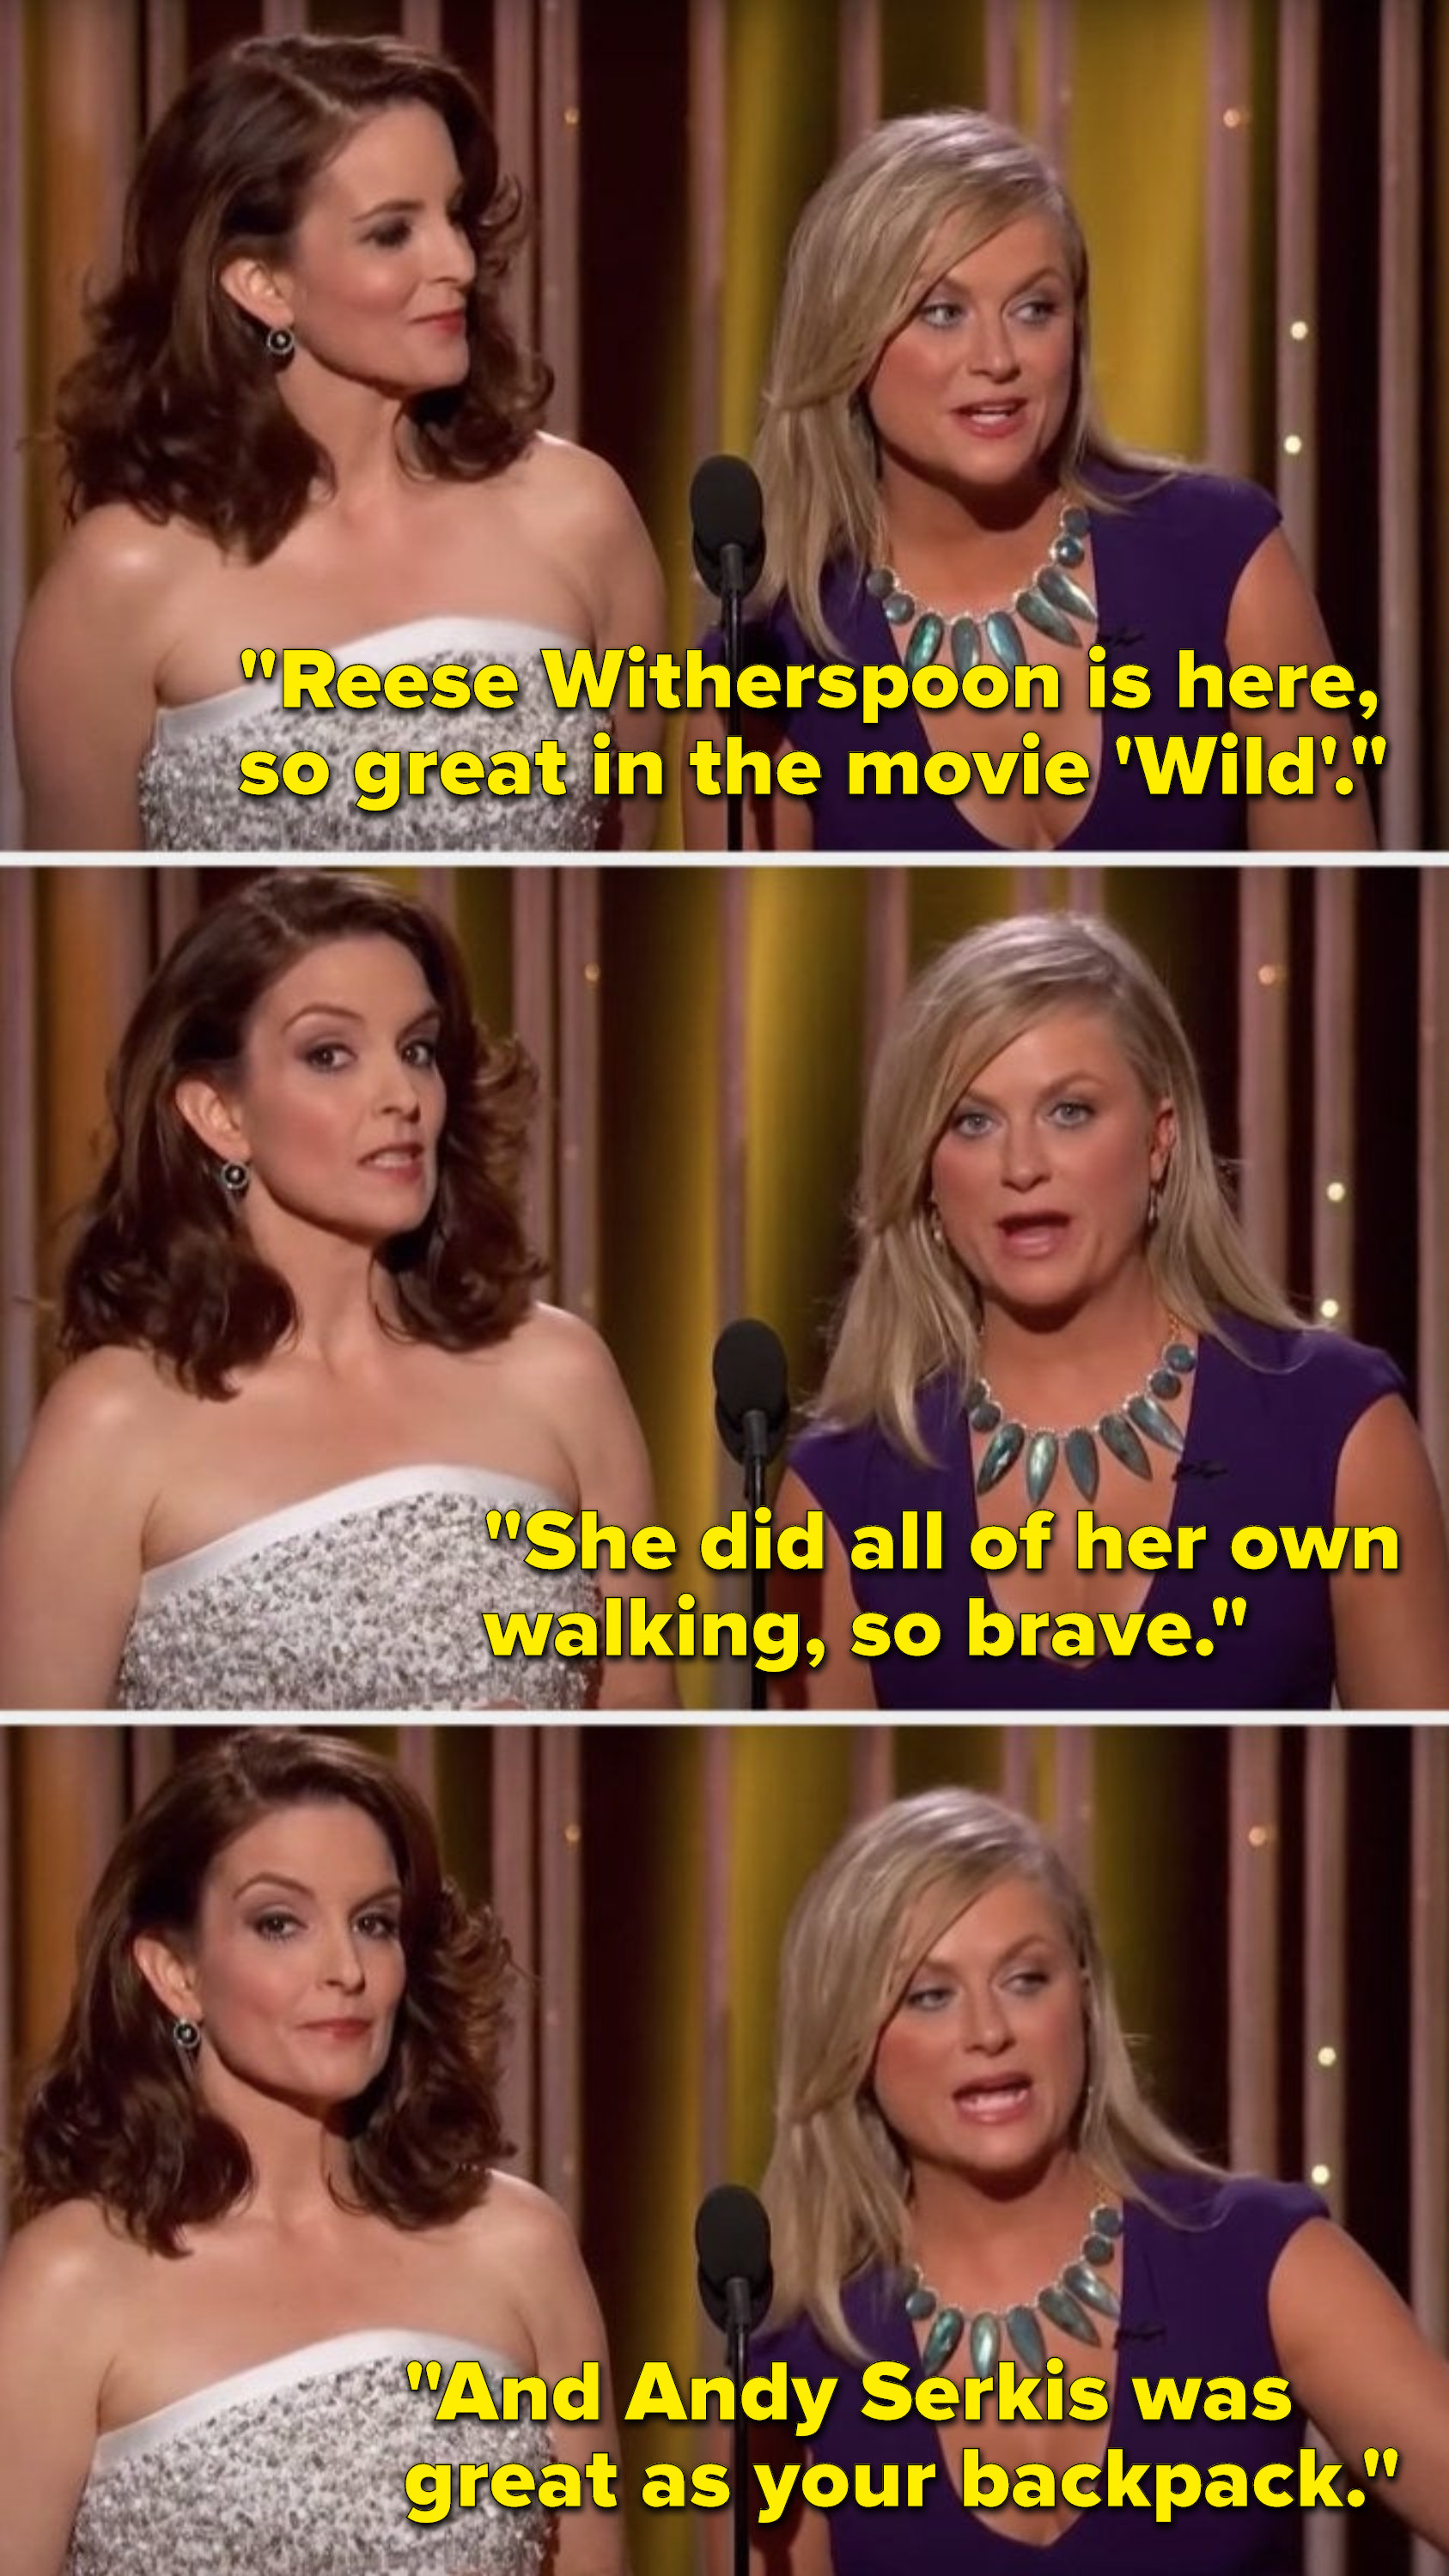 """Poehler says, """"Reese Witherspoon is here, so great in the movie 'Wild', she did all of her own walking, so brave, and Andy Serkis was great as your backpack"""""""